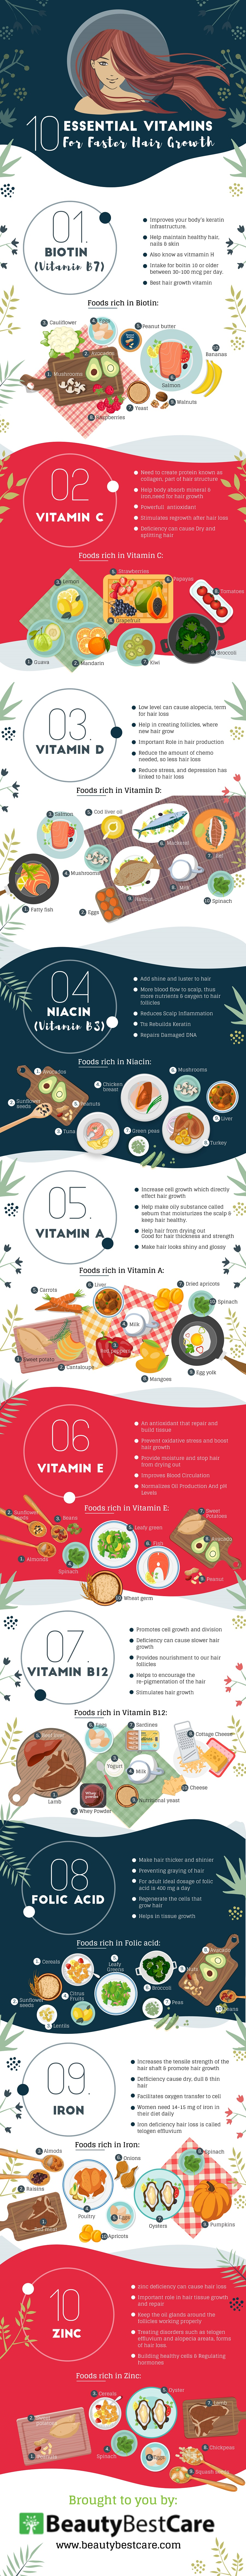 10 Vitamins Essential for Healthy Hair Growth - Infographic